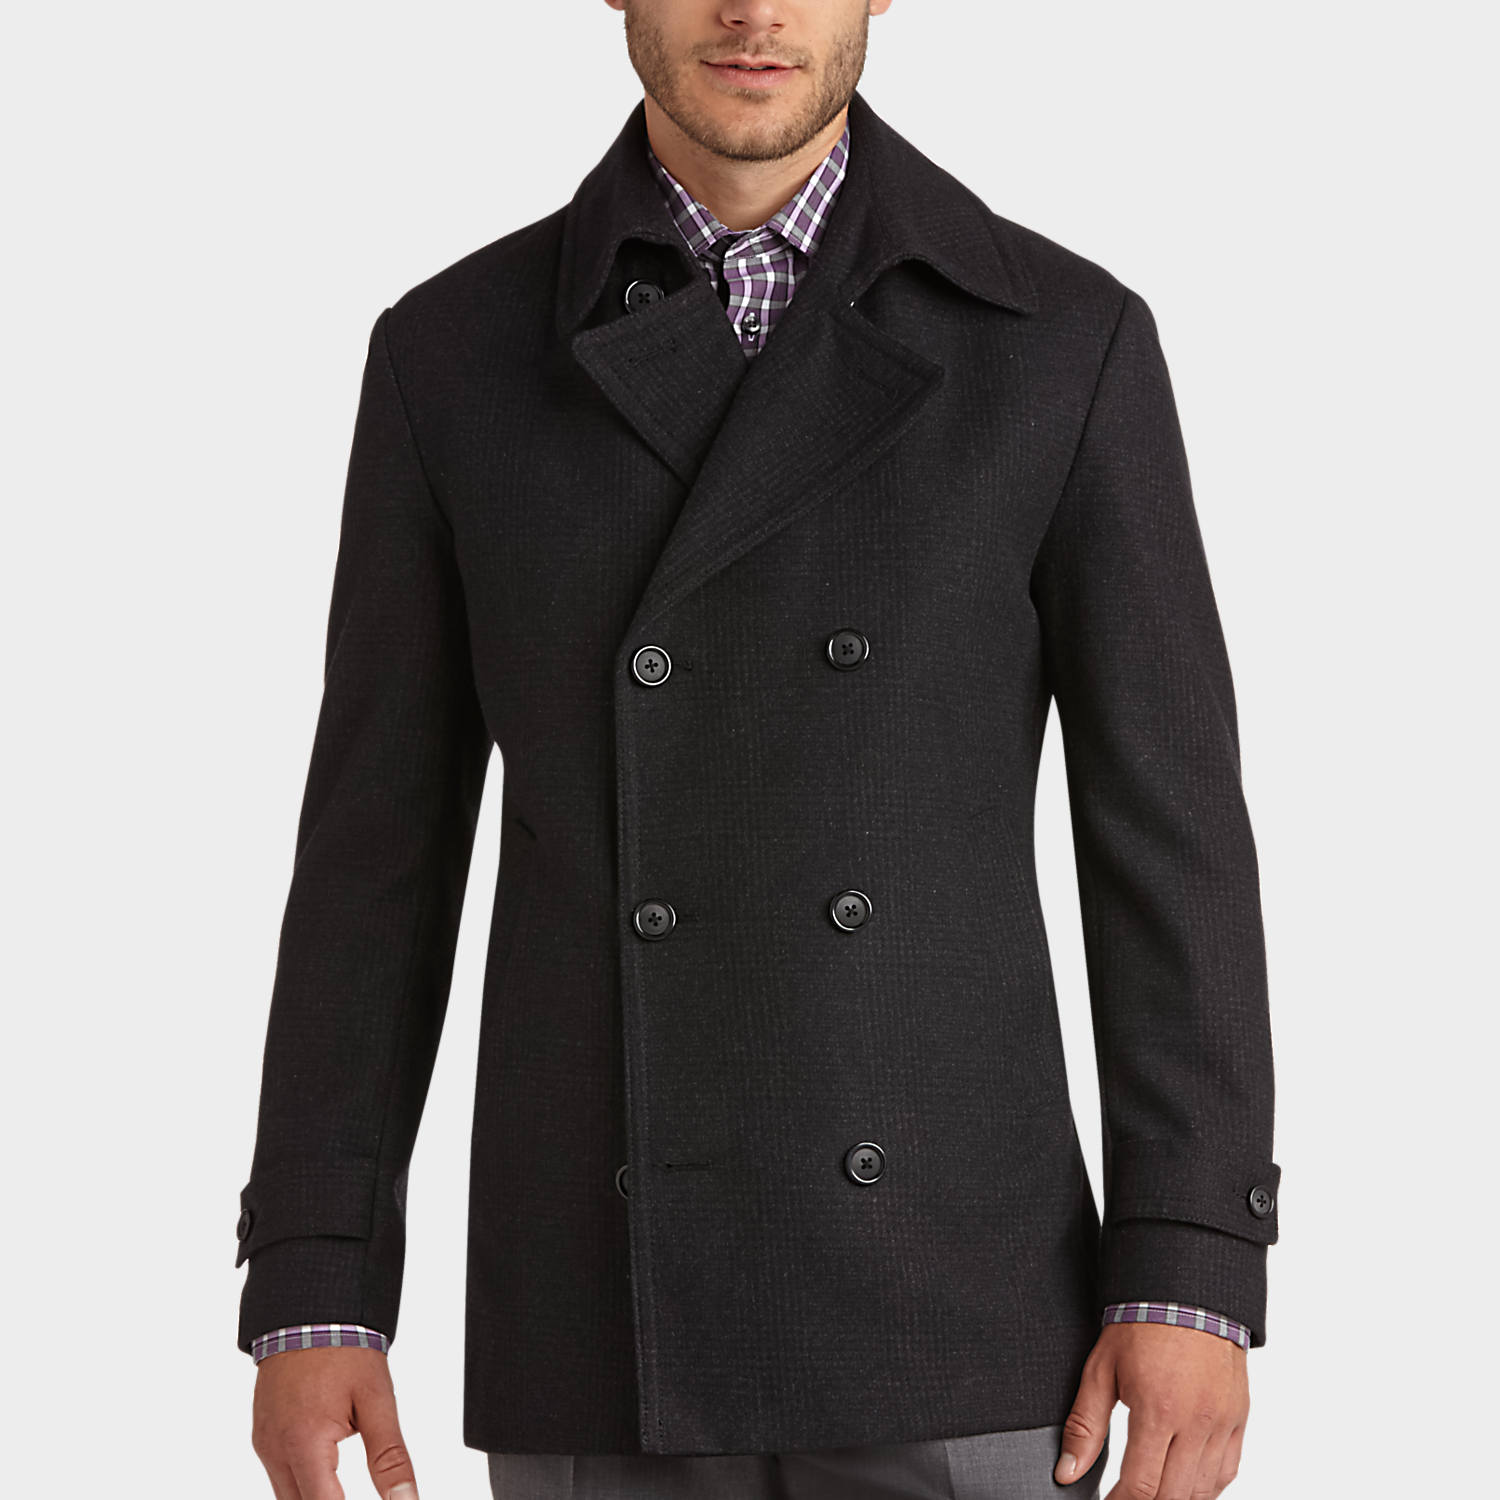 Pronto Uomo Charcoal Plaid Modern Fit Peacoat - Peacoats | Men's Wearhouse